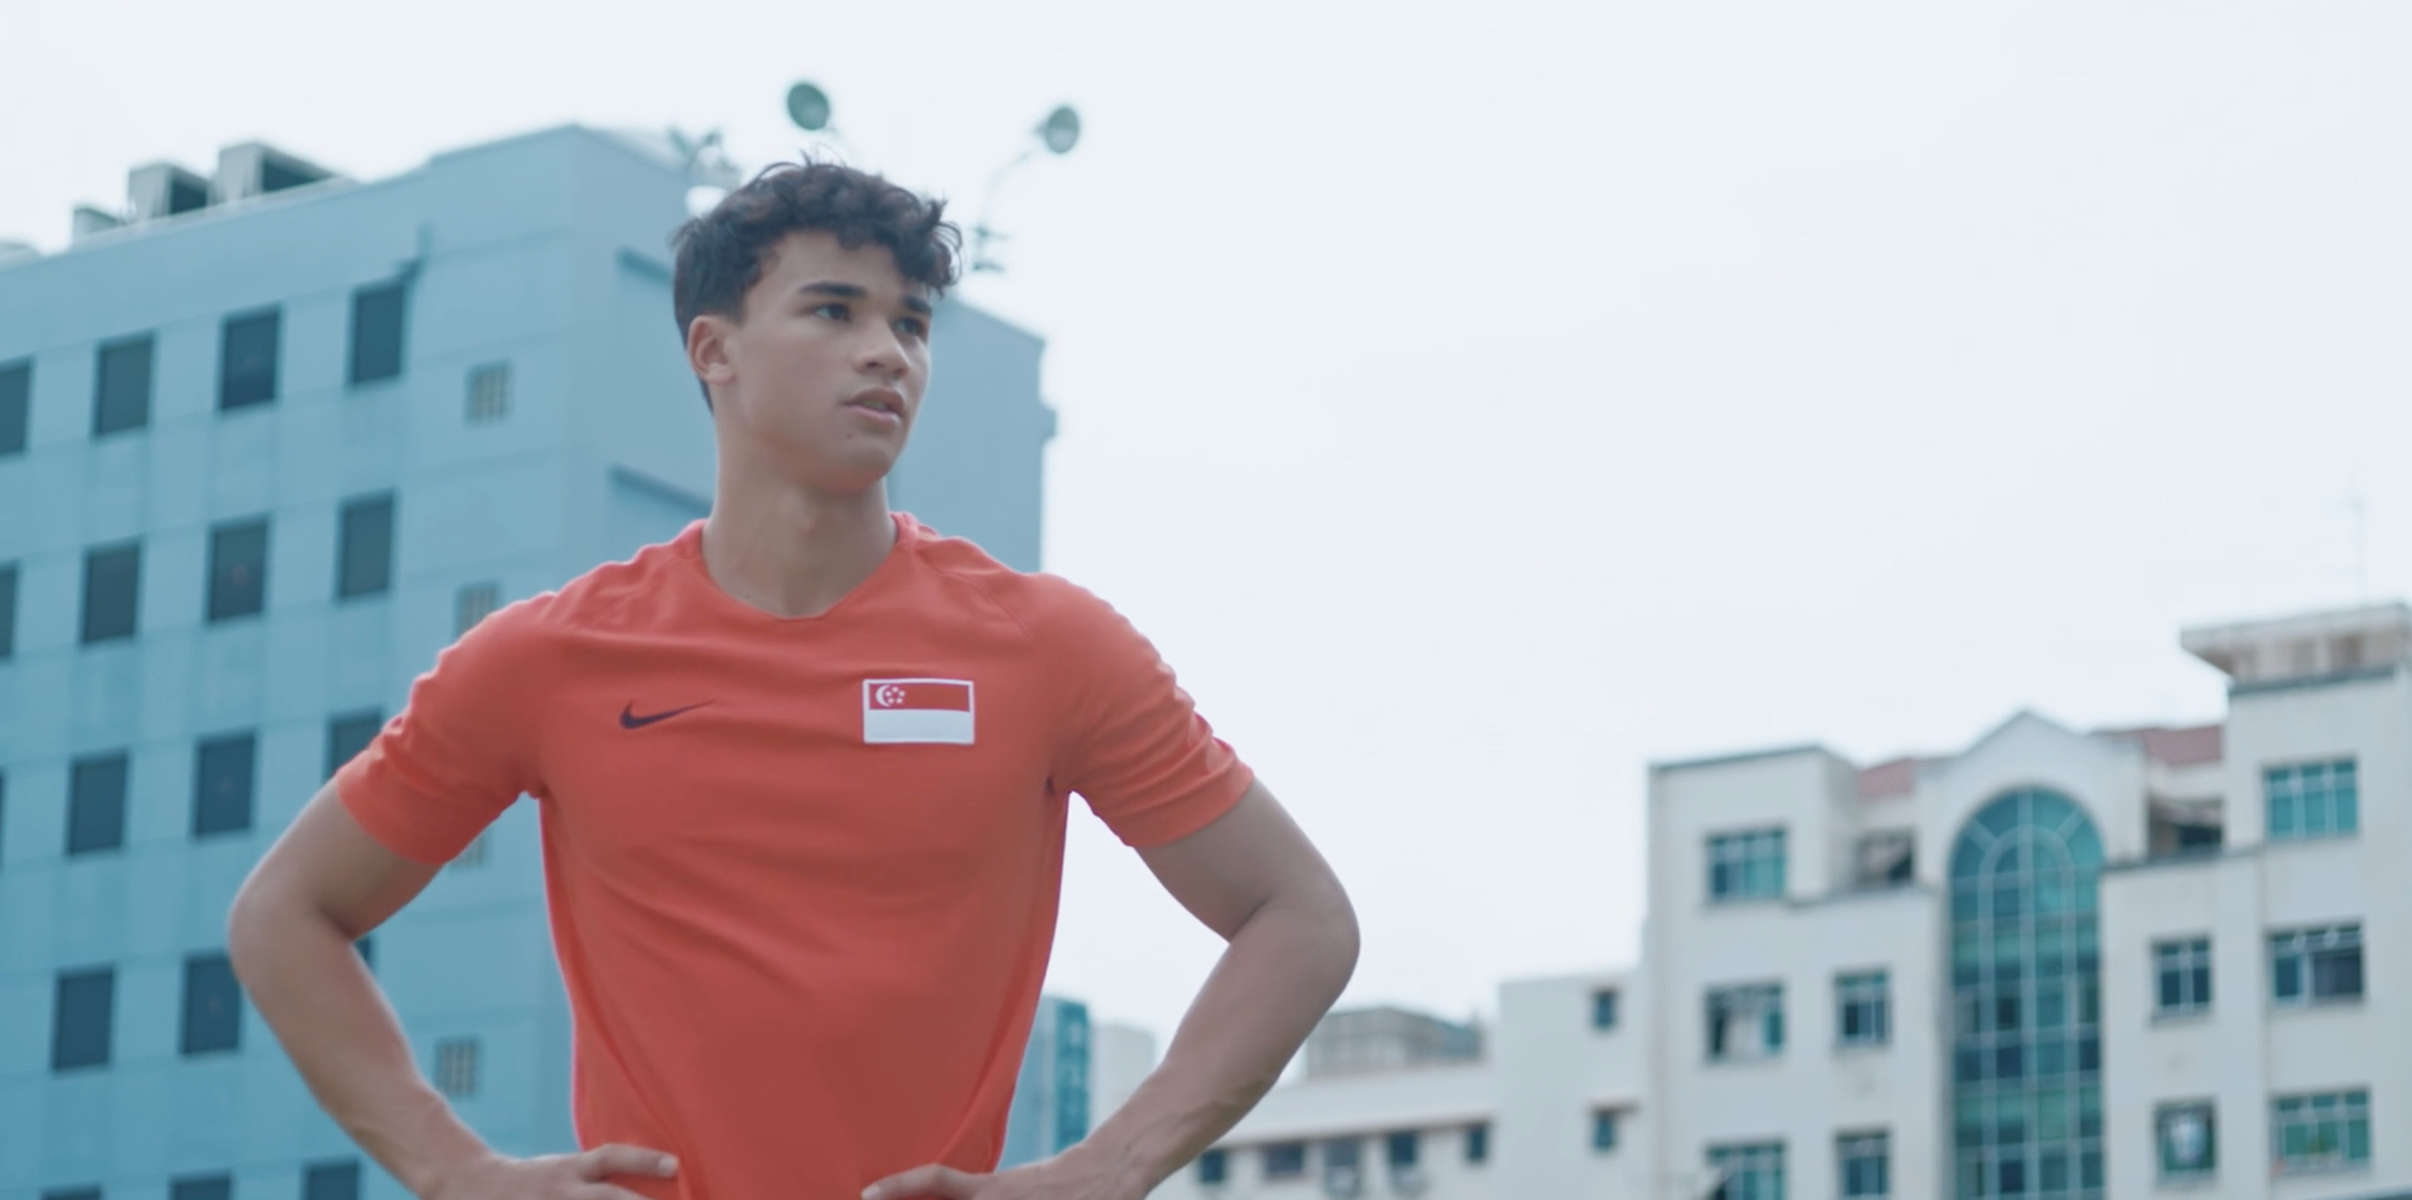 Team Singapore ROAR as ONE campaign for the SEA Games, featuring Ikhsan Fandi.(2019)